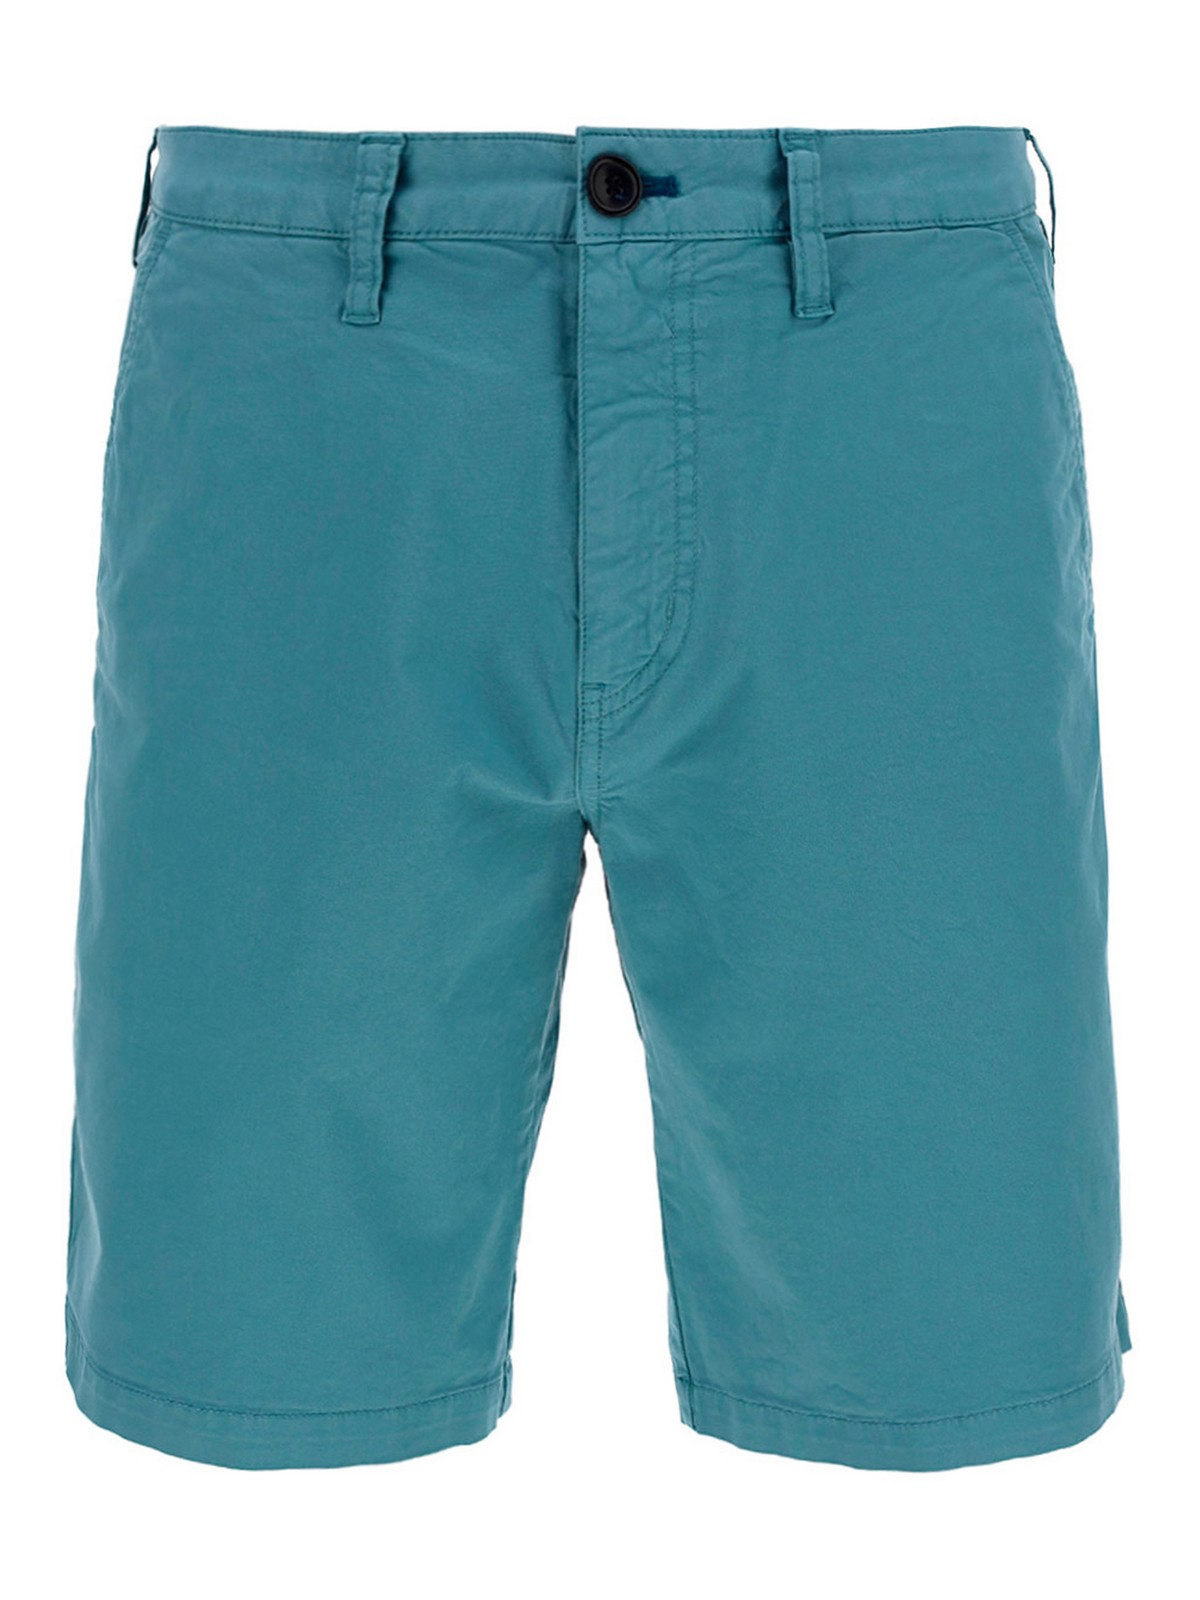 Paul Smith STRETCH COTTON SHORTS